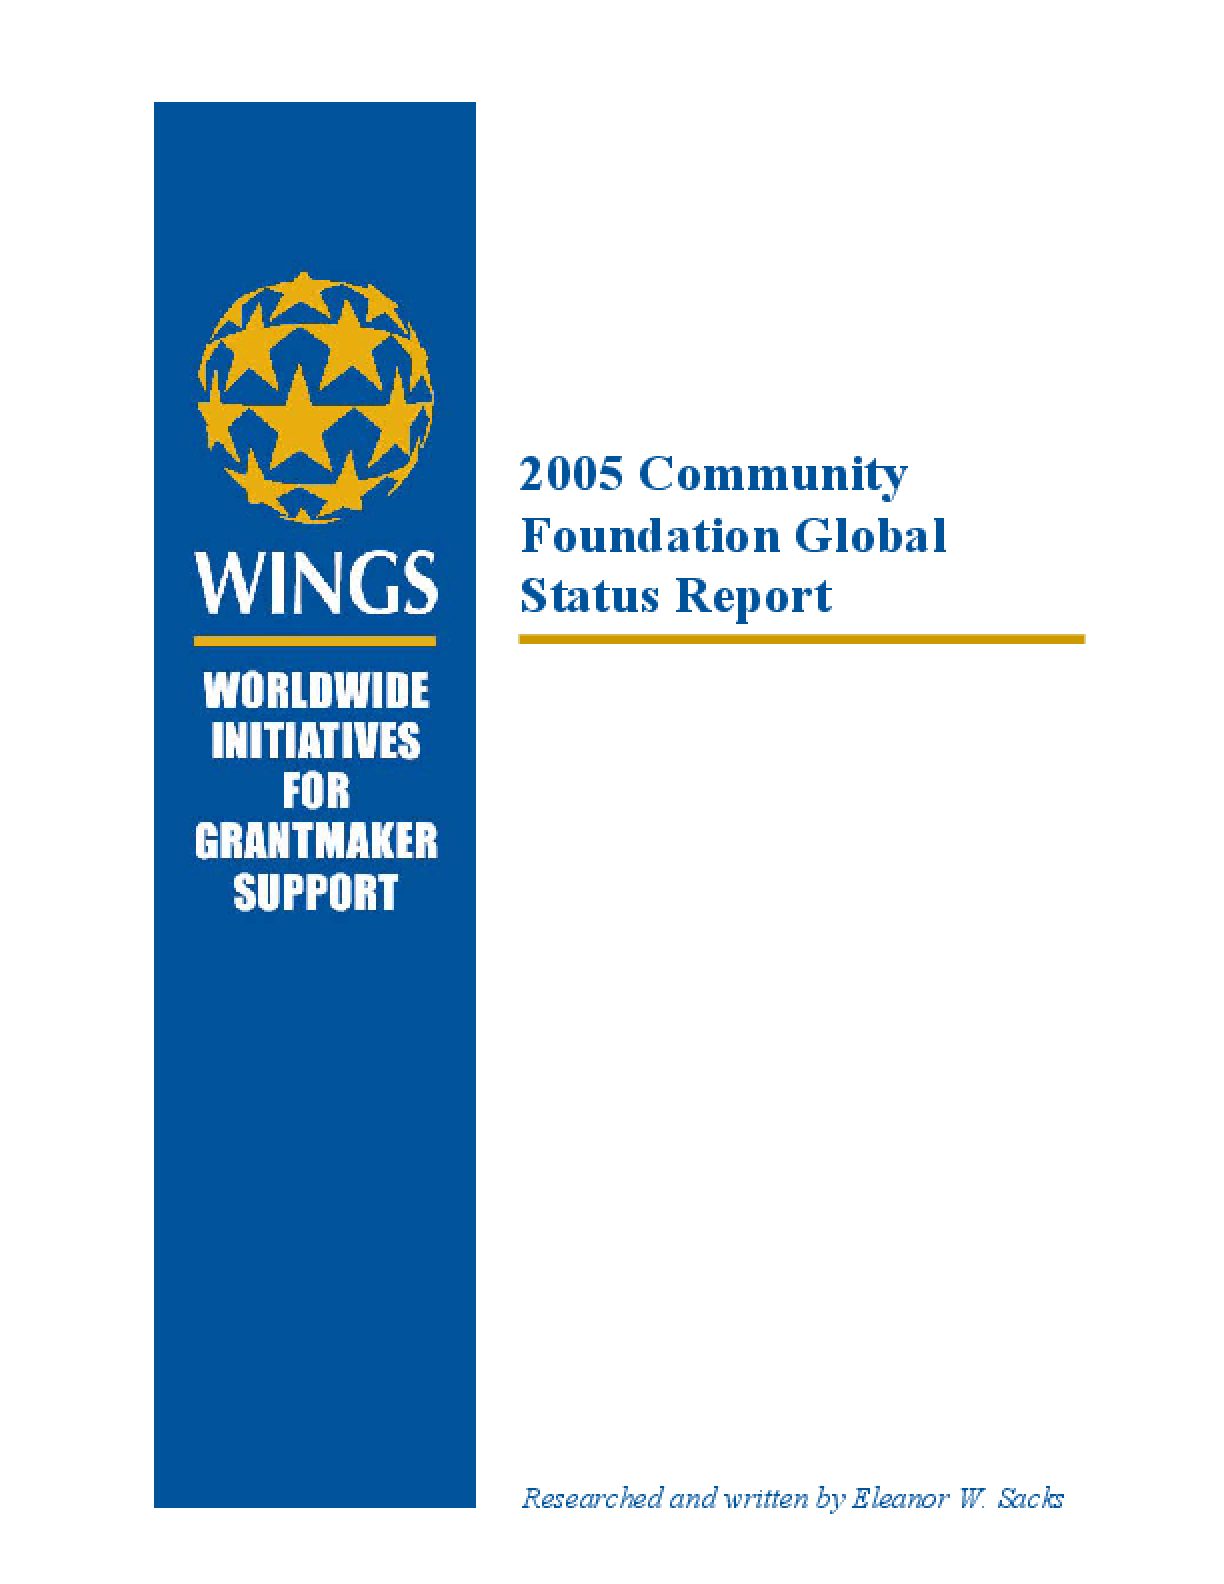 2005 Community Foundation Global Status Report